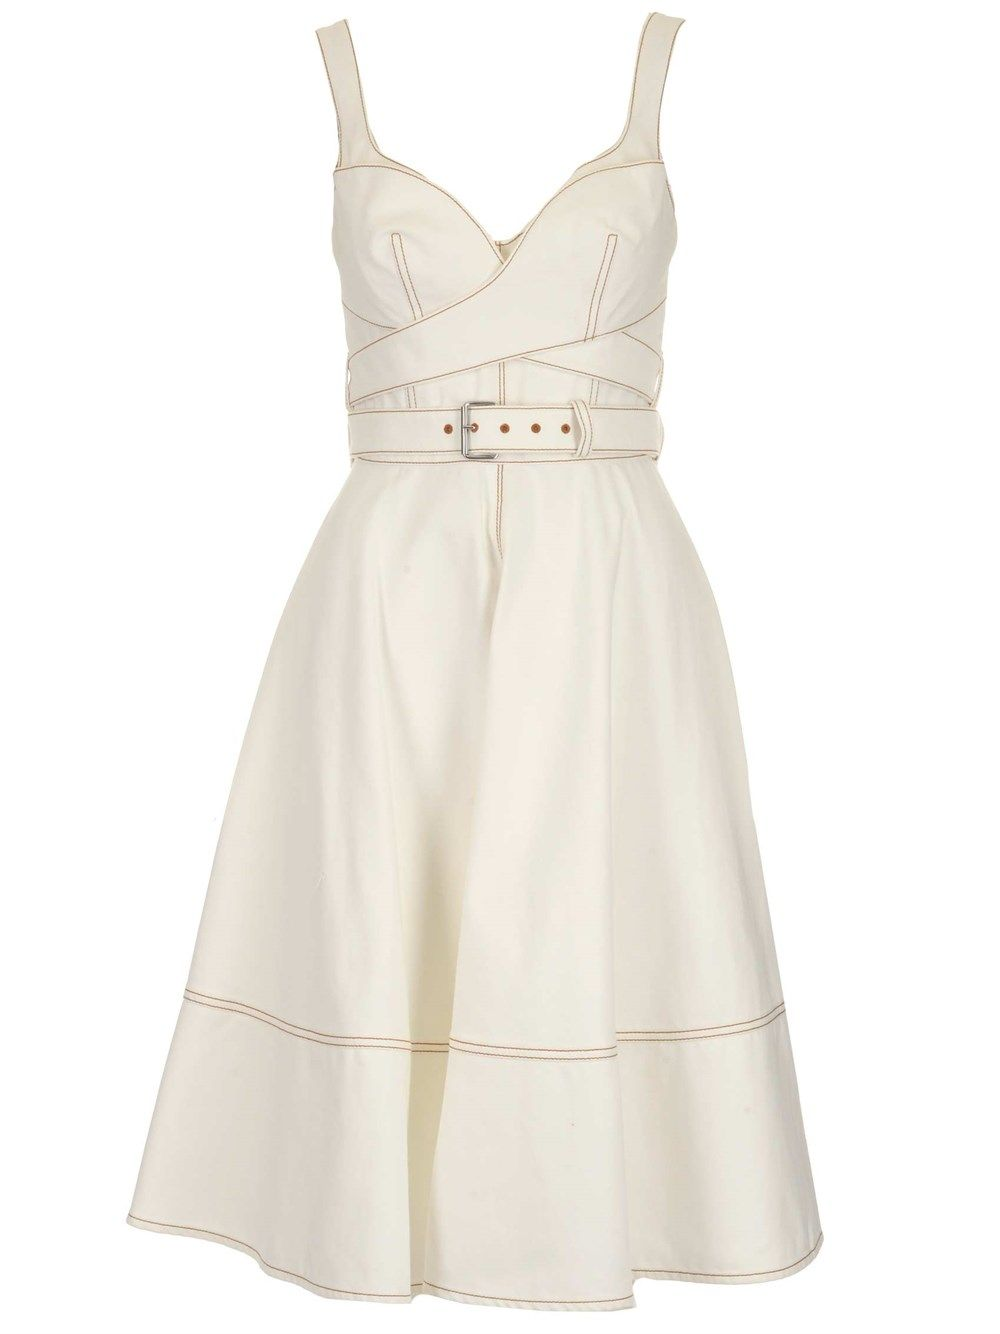 Alexander Mcqueen ALEXANDER MCQUEEN WOMEN'S WHITE OTHER MATERIALS DRESS